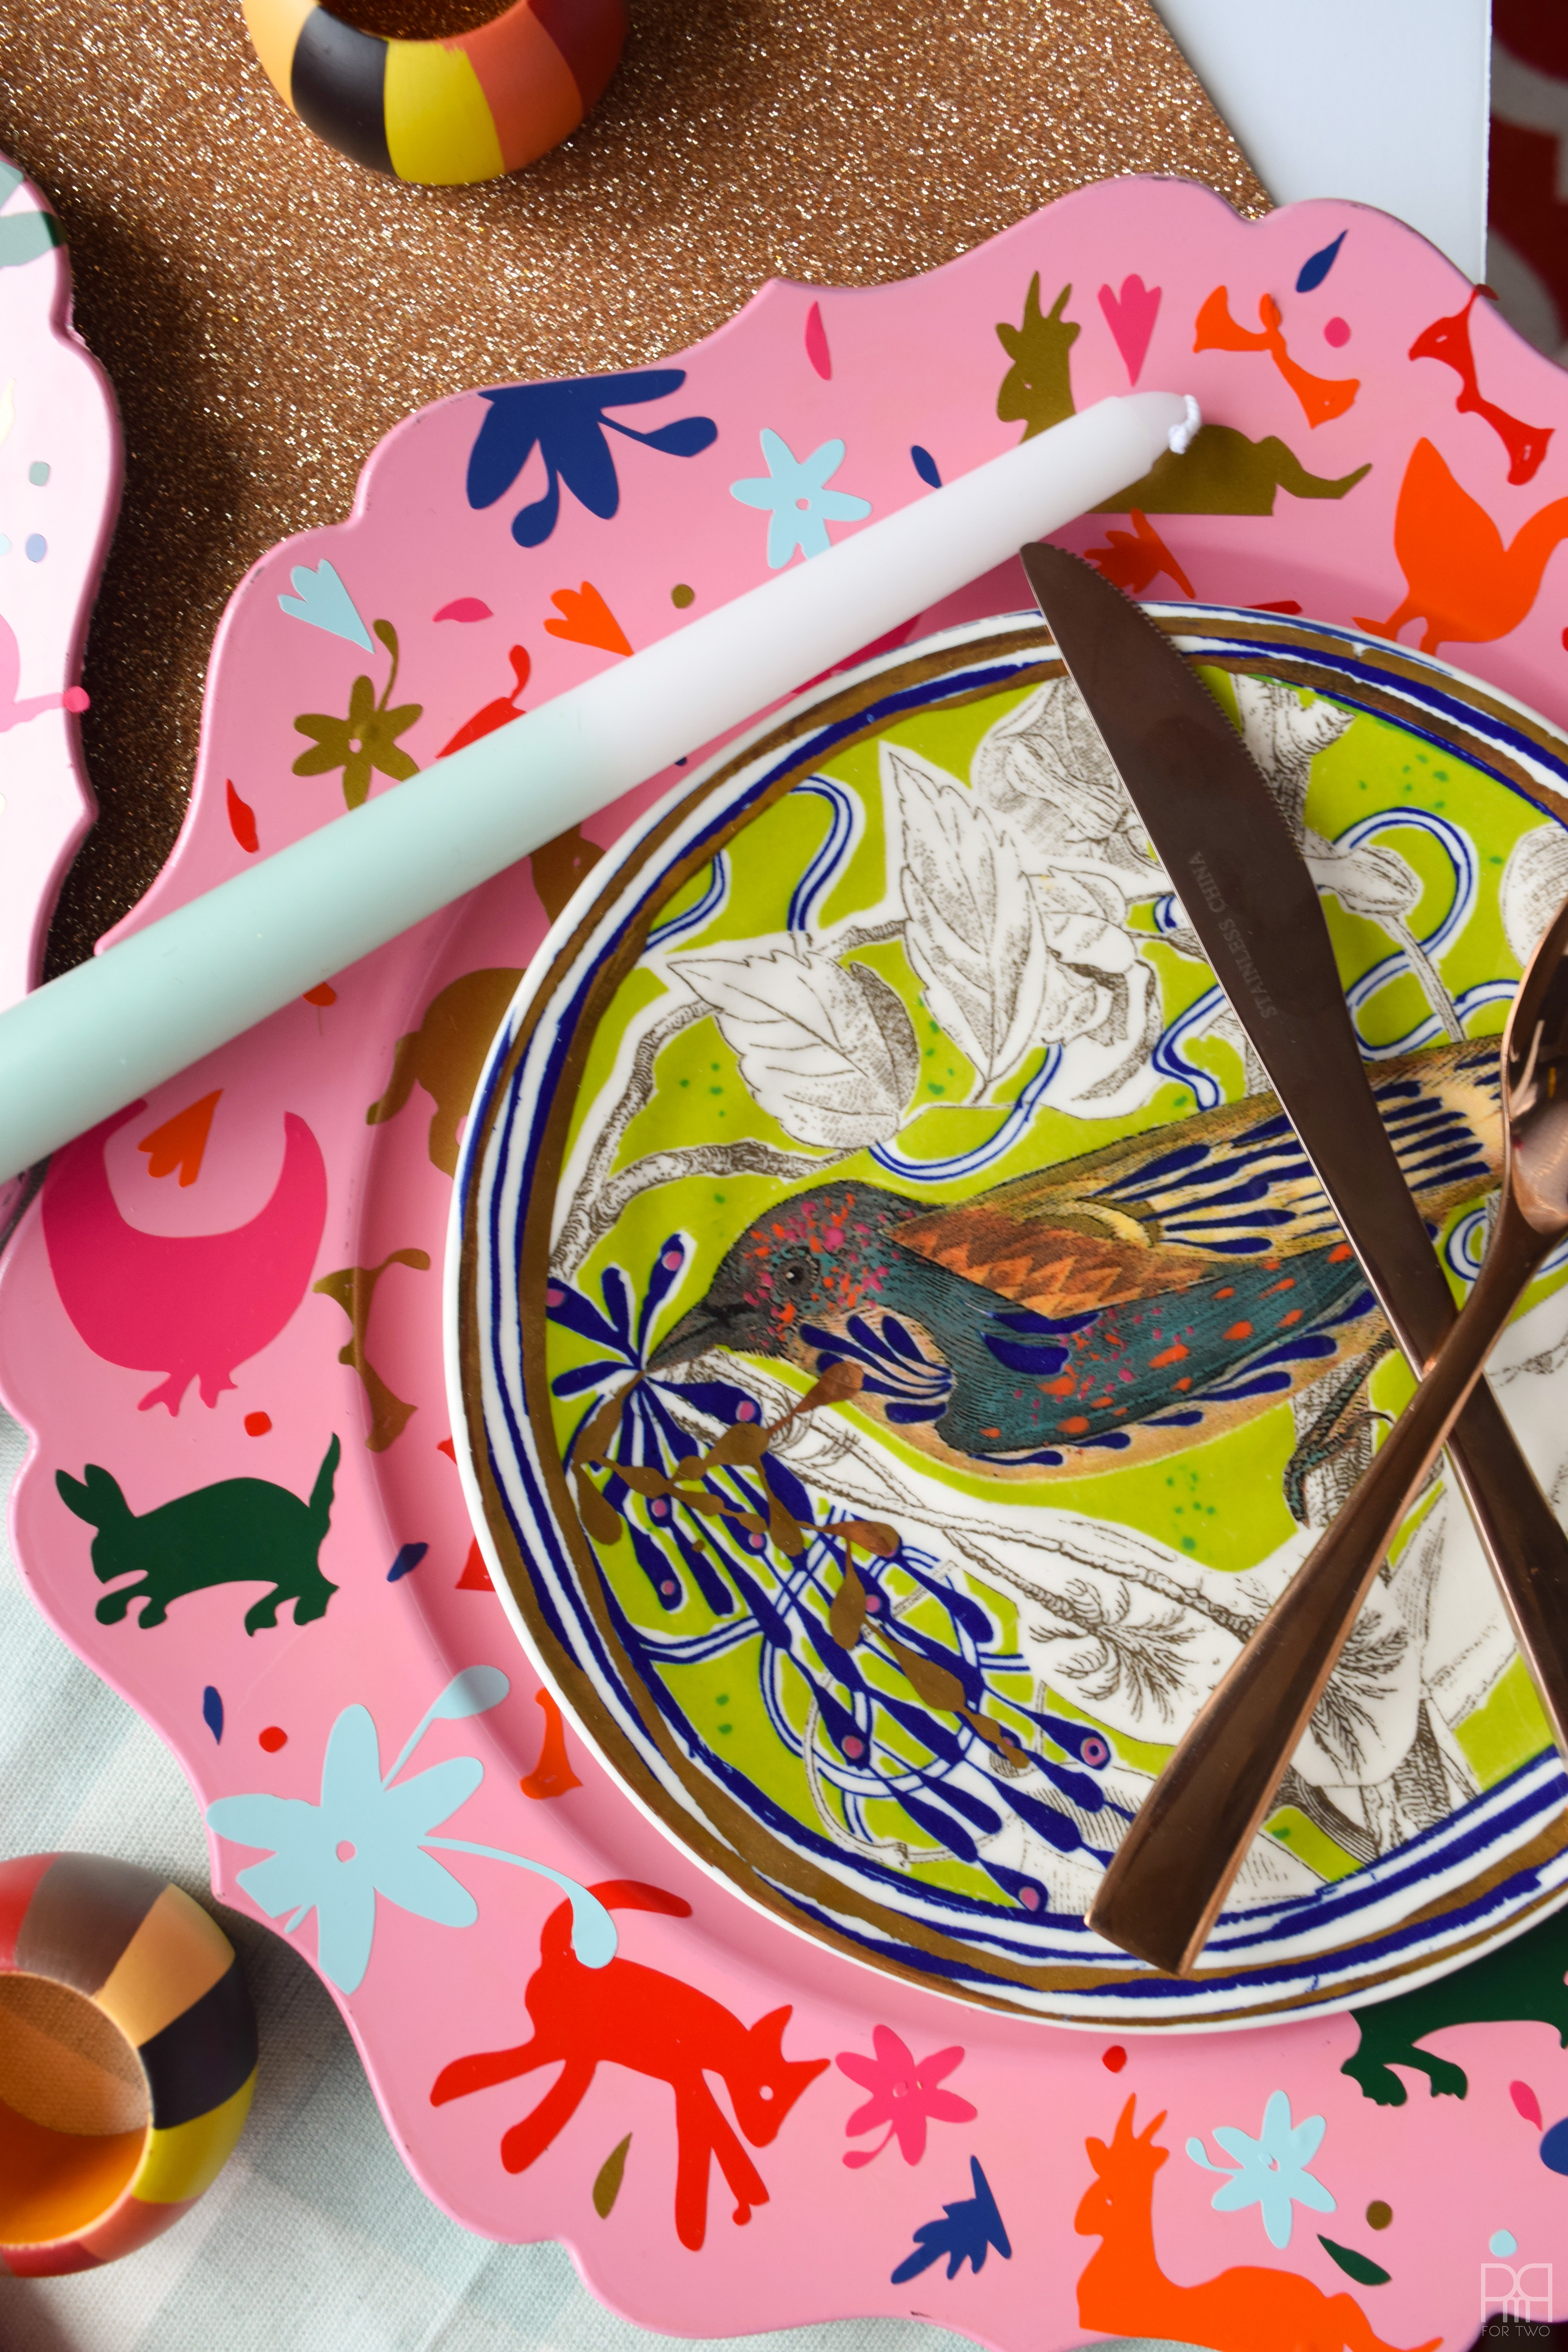 Vinyl Otomi Chargers make an tablescape POP 💥 Make your own using vinyl, your Cricut, and a bit of elbow grease. These colourful chargers are the perfect accessory for any place setting or colourful table decor